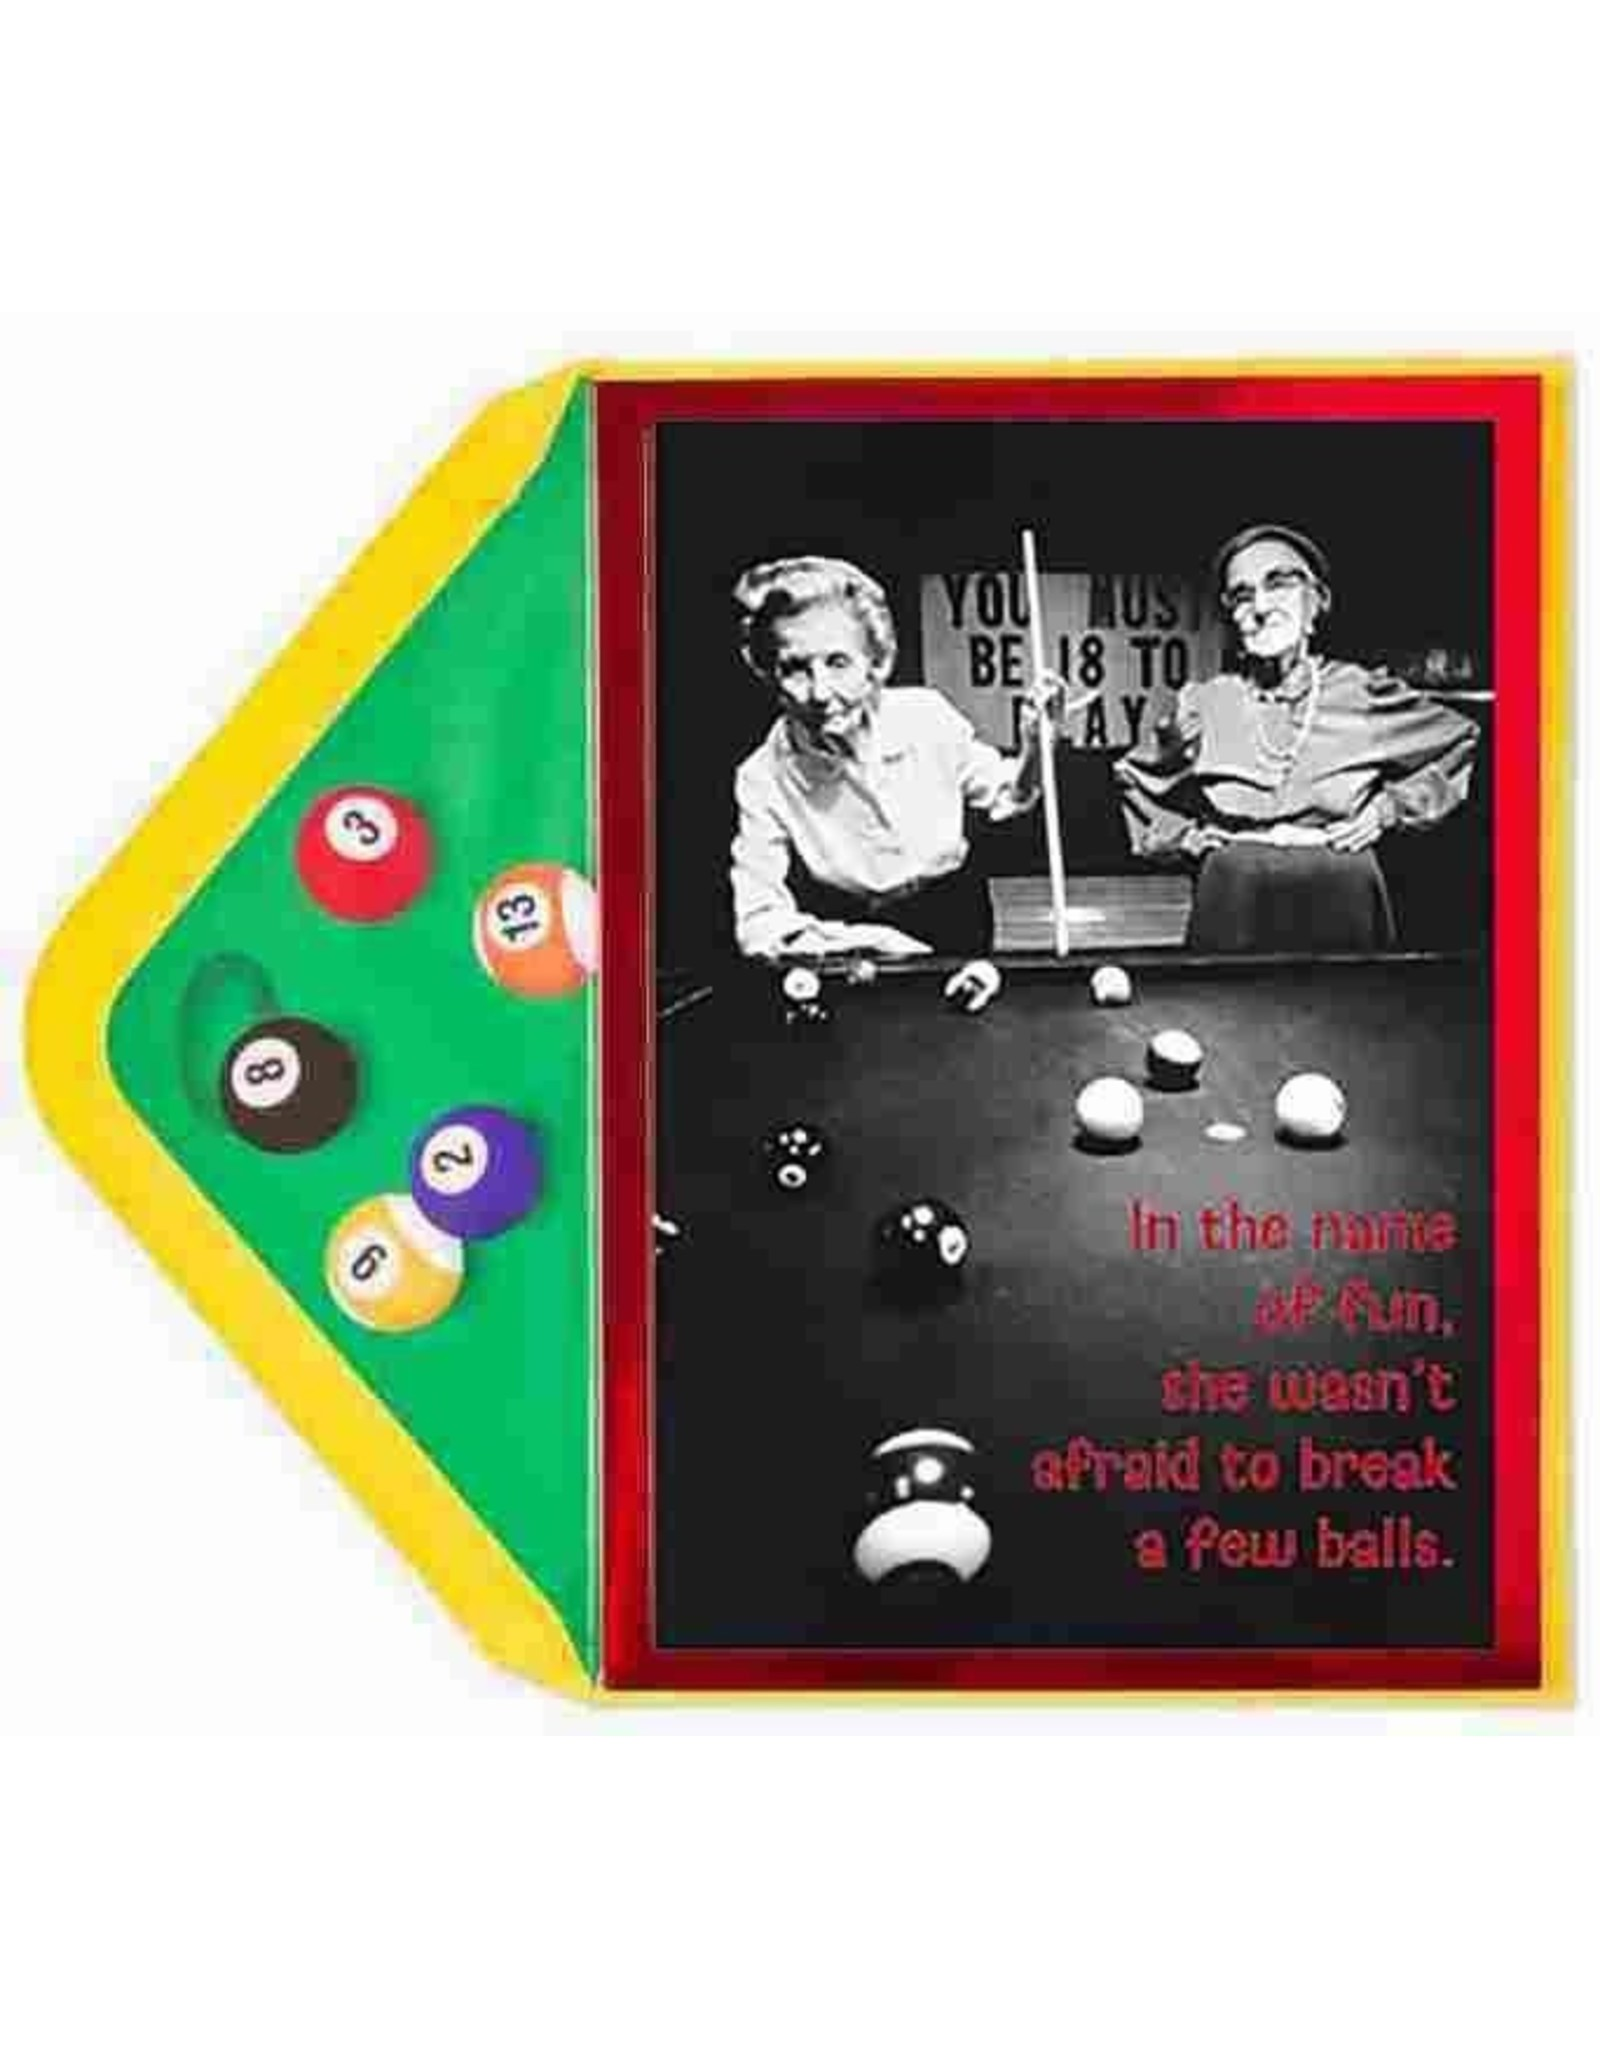 PAPYRUS® Birthday Cards Rack It Up Shes Not Afraid To Break A Few Balls